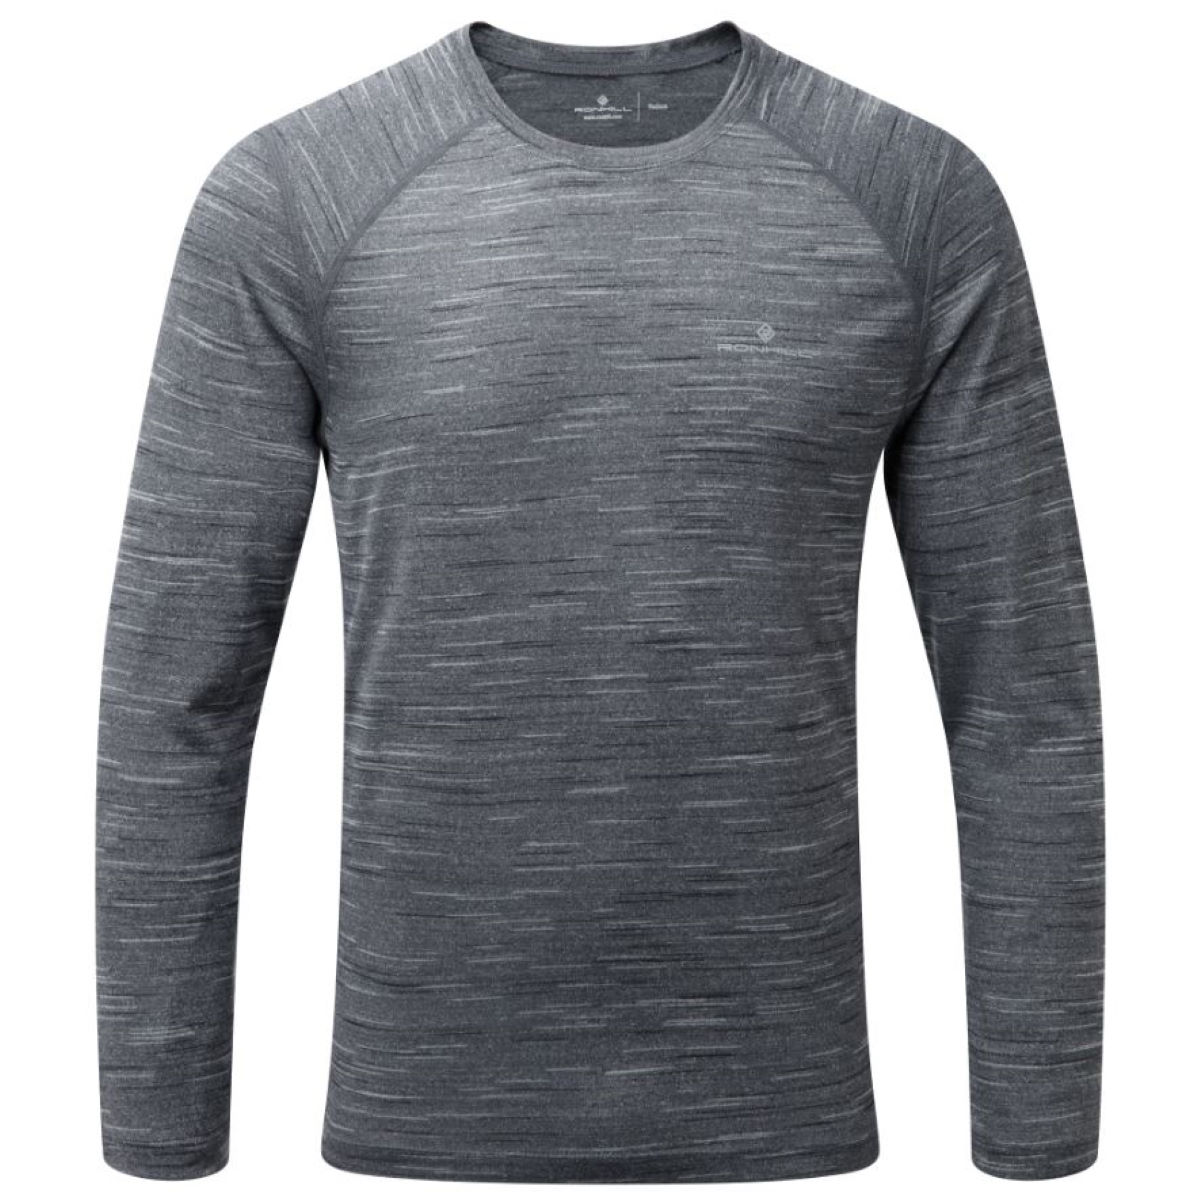 Maillot Ronhill Momentum (manches longues) - M Charcoal Marl